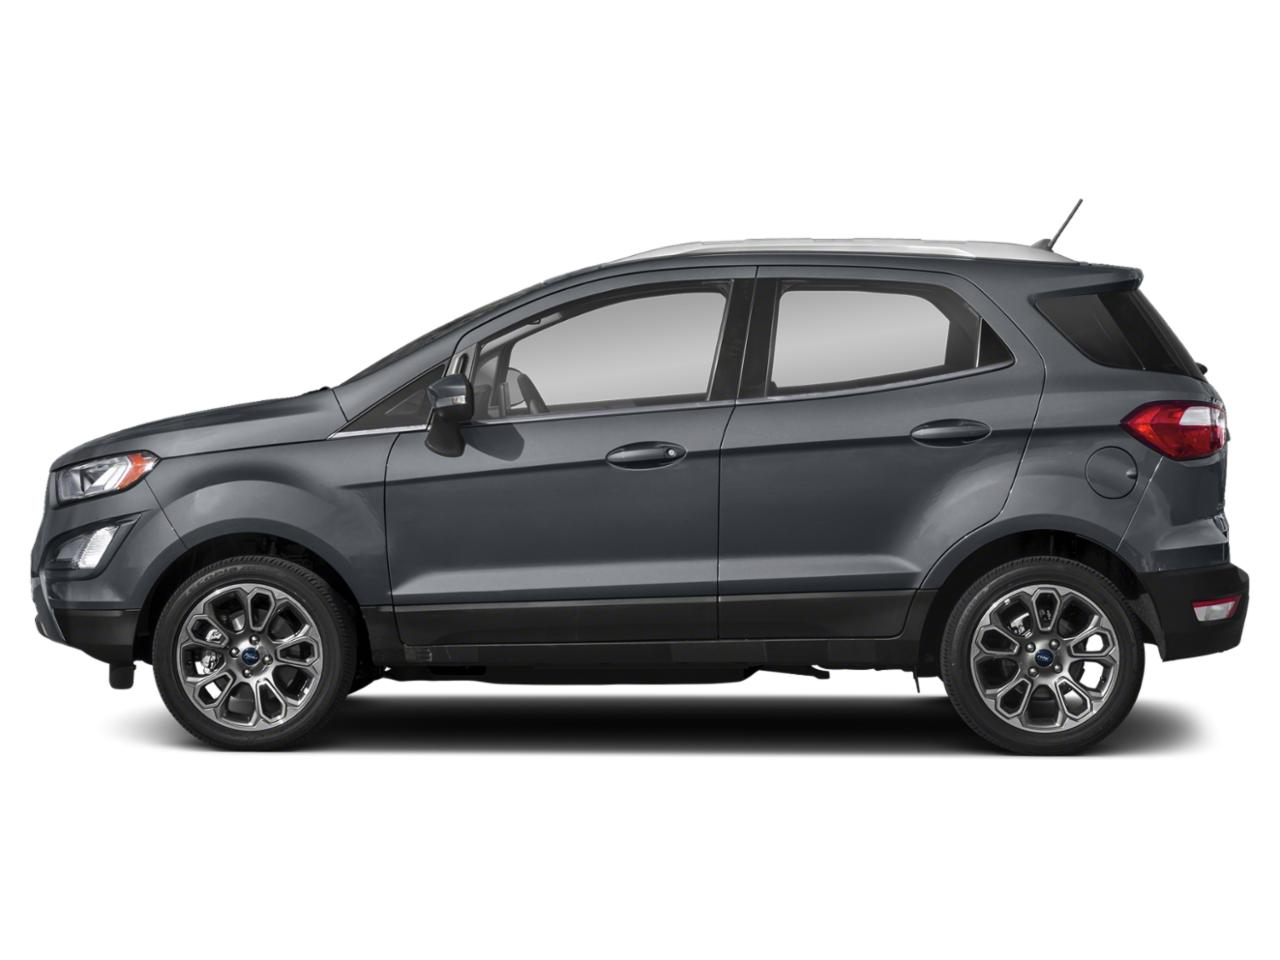 Used 2018 Ford Ecosport SE with VIN MAJ3P1TE2JC208280 for sale in Red Wing, Minnesota